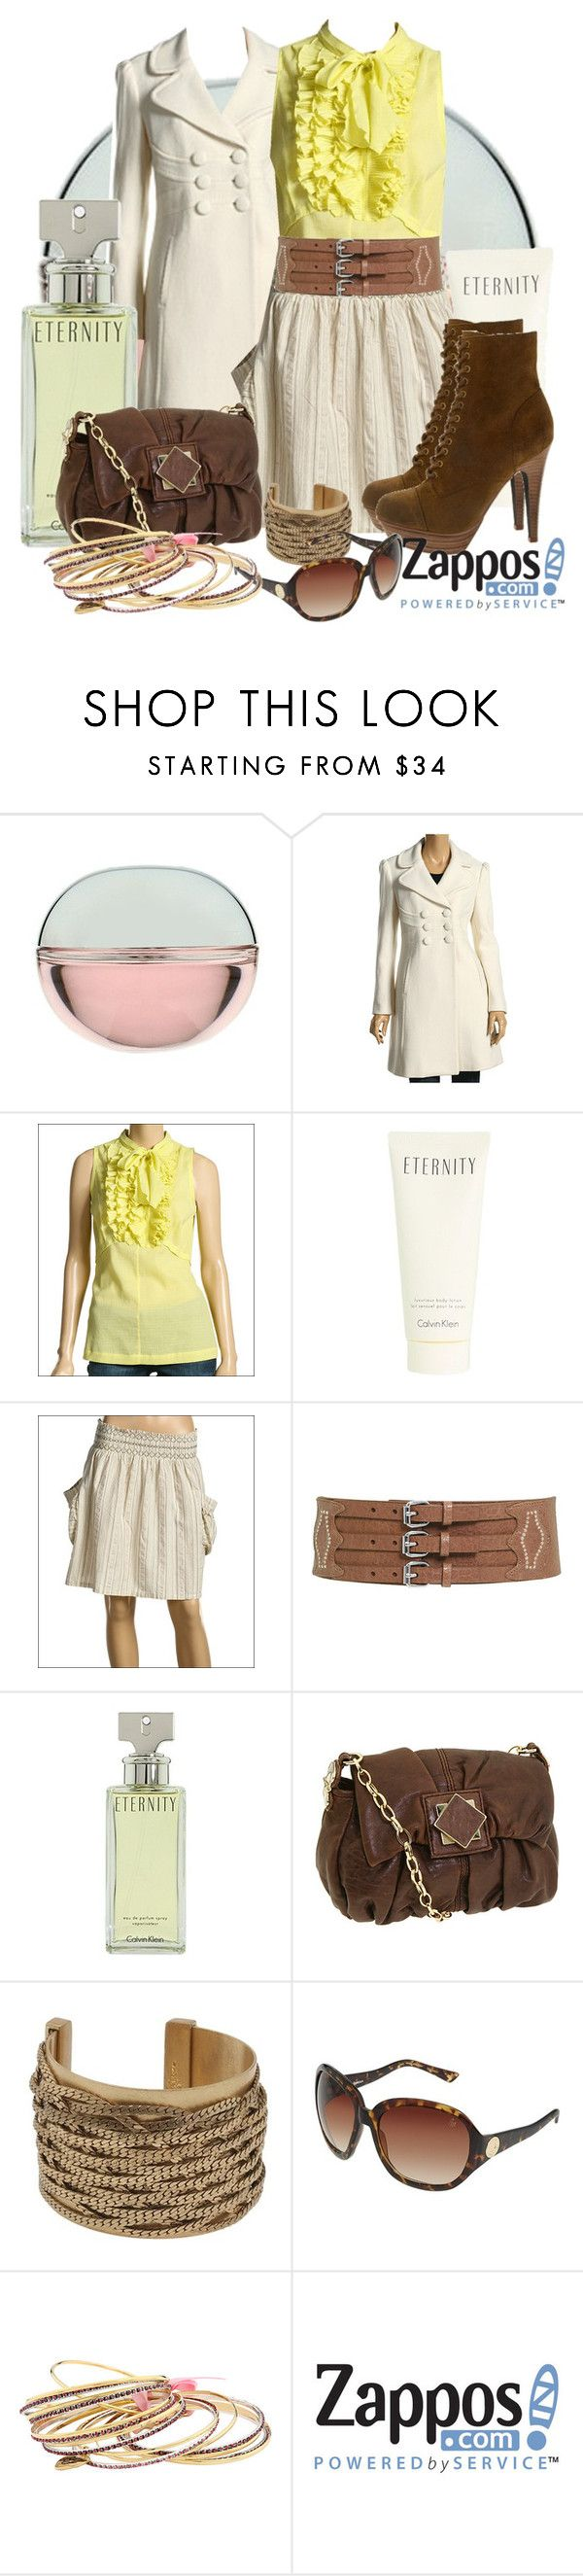 """Only Zappos"" by tamara-p ❤ liked on Polyvore featuring DKNY, Juicy Couture, Robert Rodriguez, Calvin Klein, O'Neill, Jessica Simpson, Steve Madden, Gustto, Rocawear and Betsey Johnson"